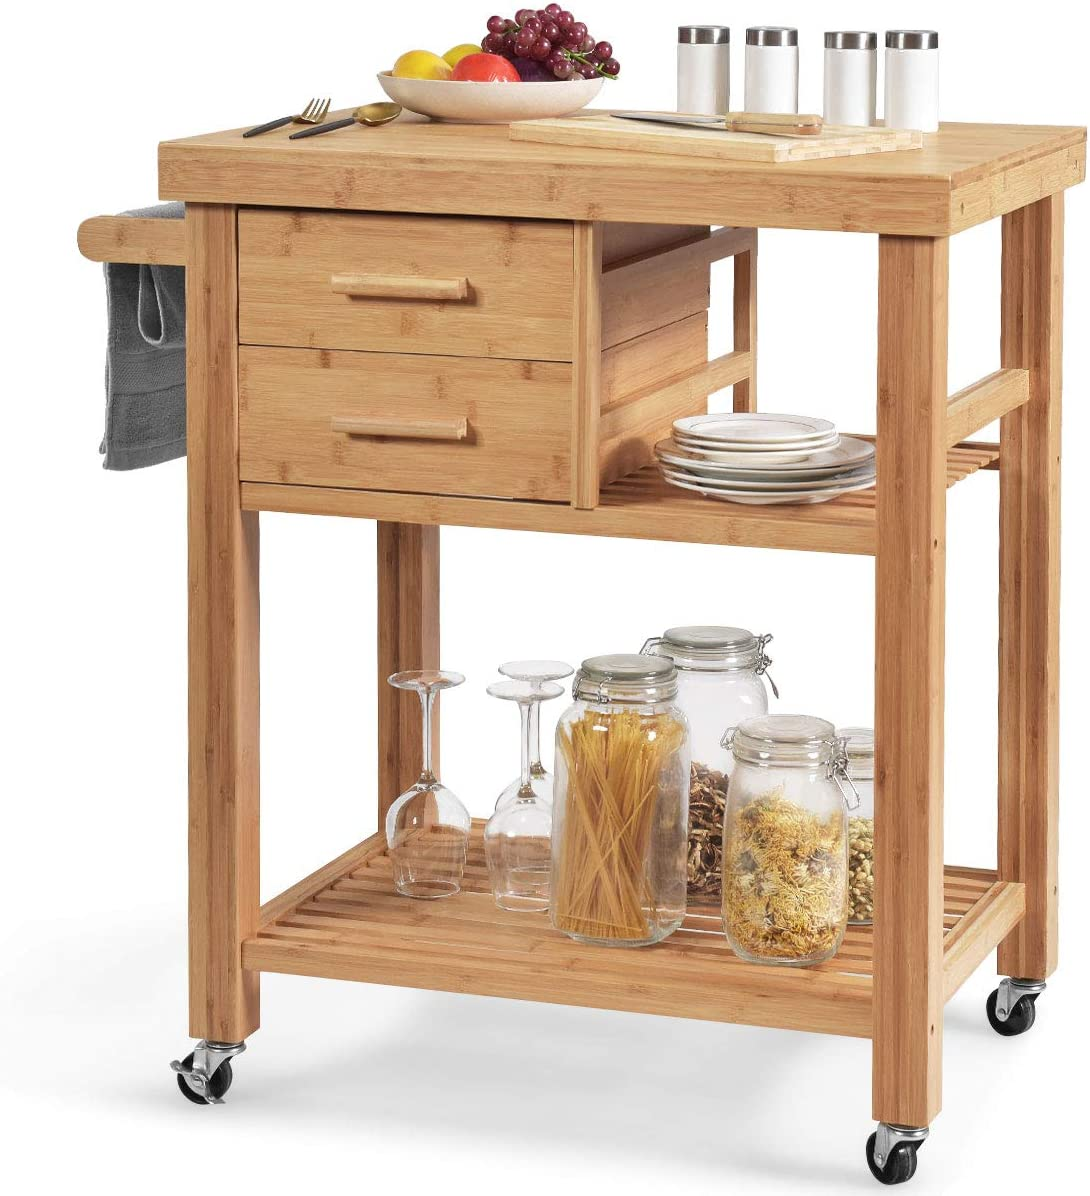 Giantex Kitchen Island, Bamboo Island Cart, Kitchen Trolley Cart on Wheels, Rolling Kitchen Cart, 2 Drawers, Towel Rack, Casters with Lock (Nutural)